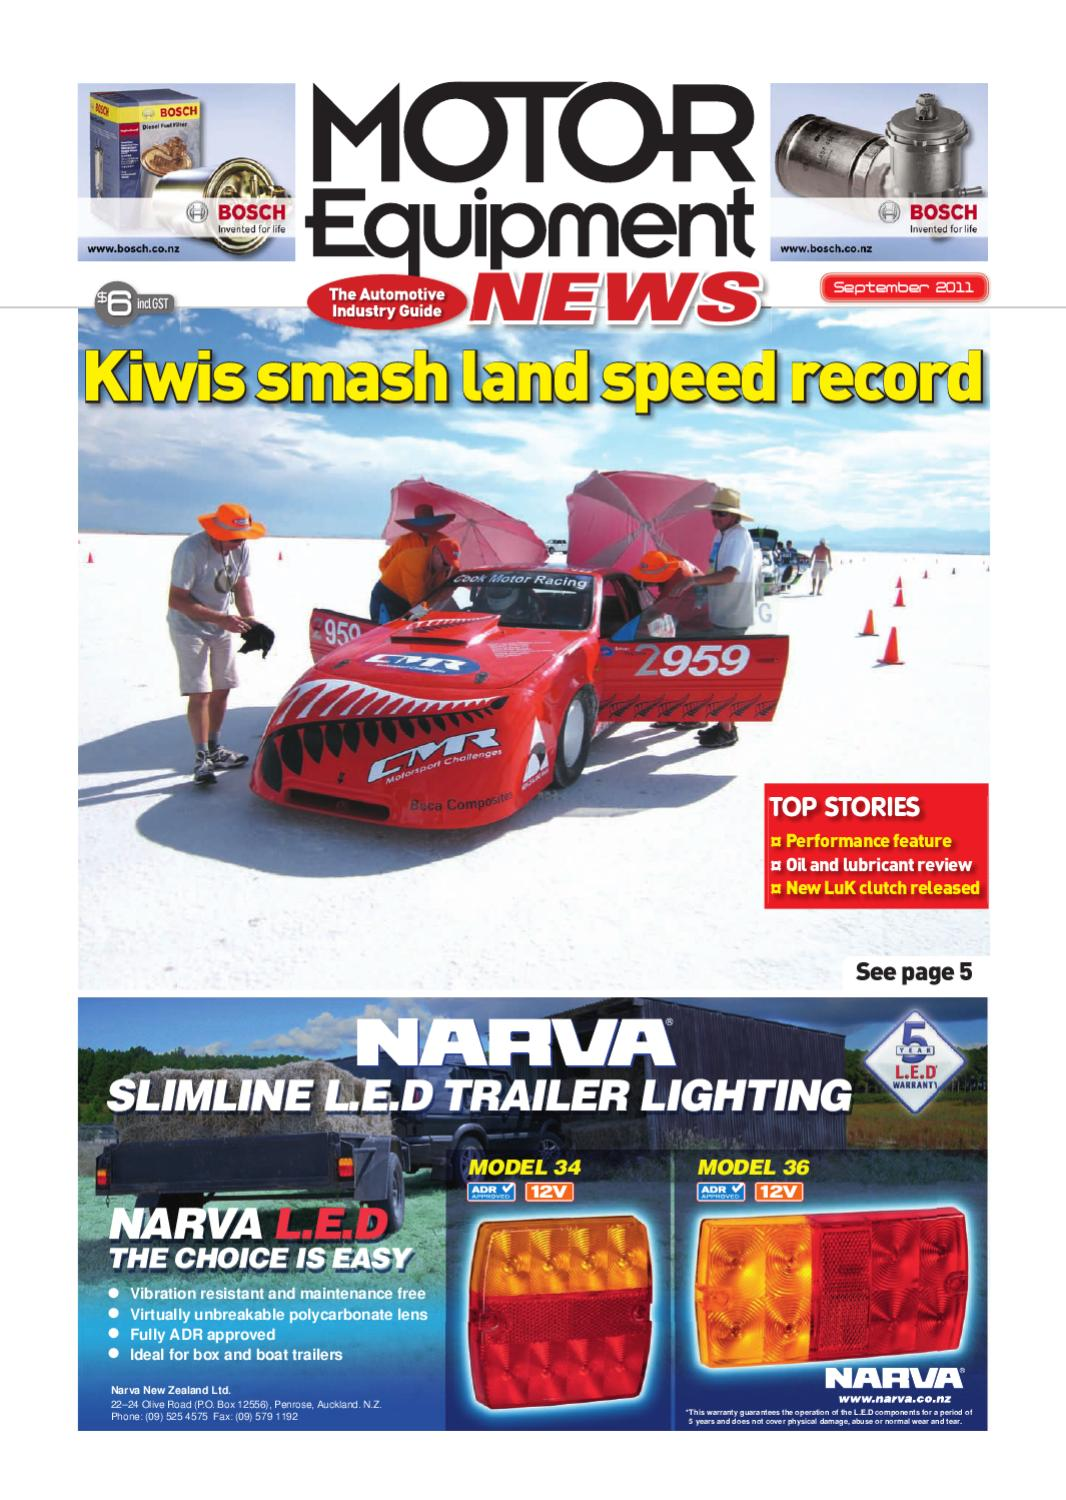 Motor Equipment News September 2011 by Adrenalin Publishing